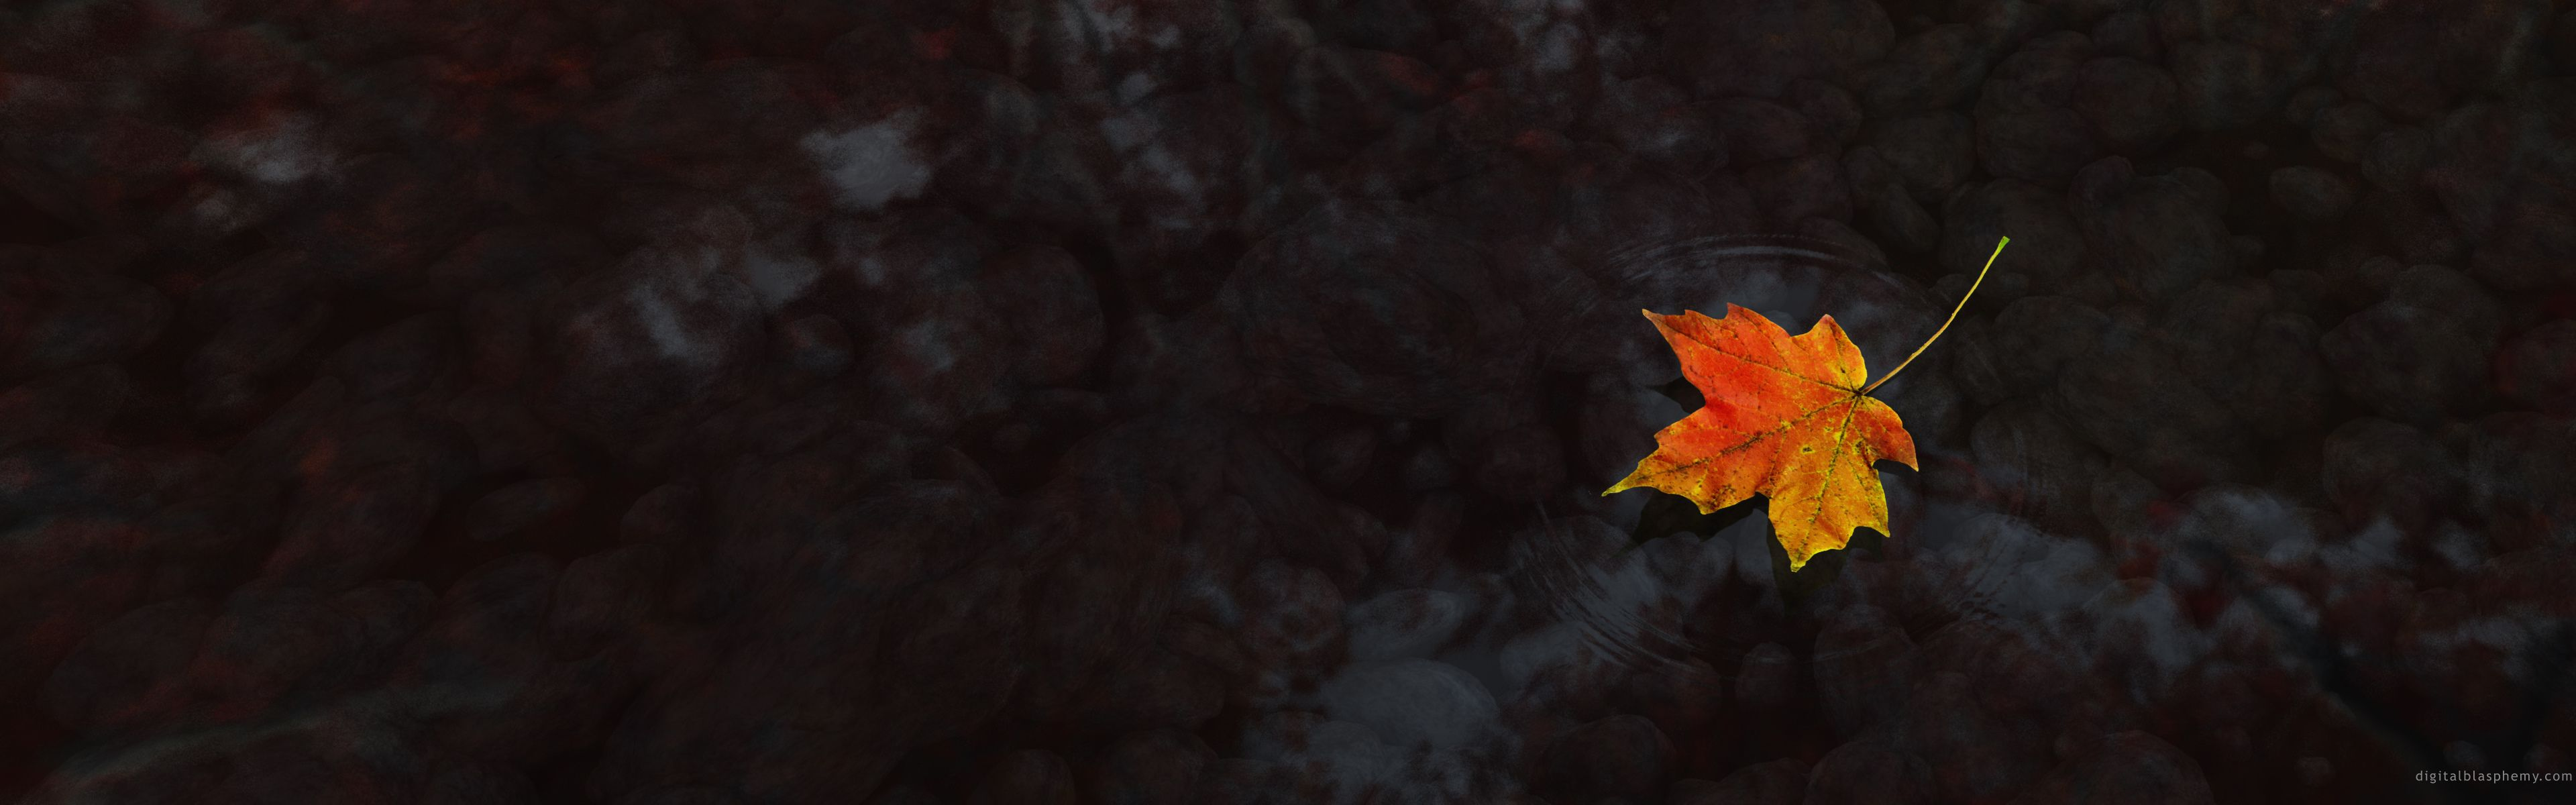 Autumn Leaf Over Water Leaf Wallpaper Hd Wallpaper Android Wallpaper